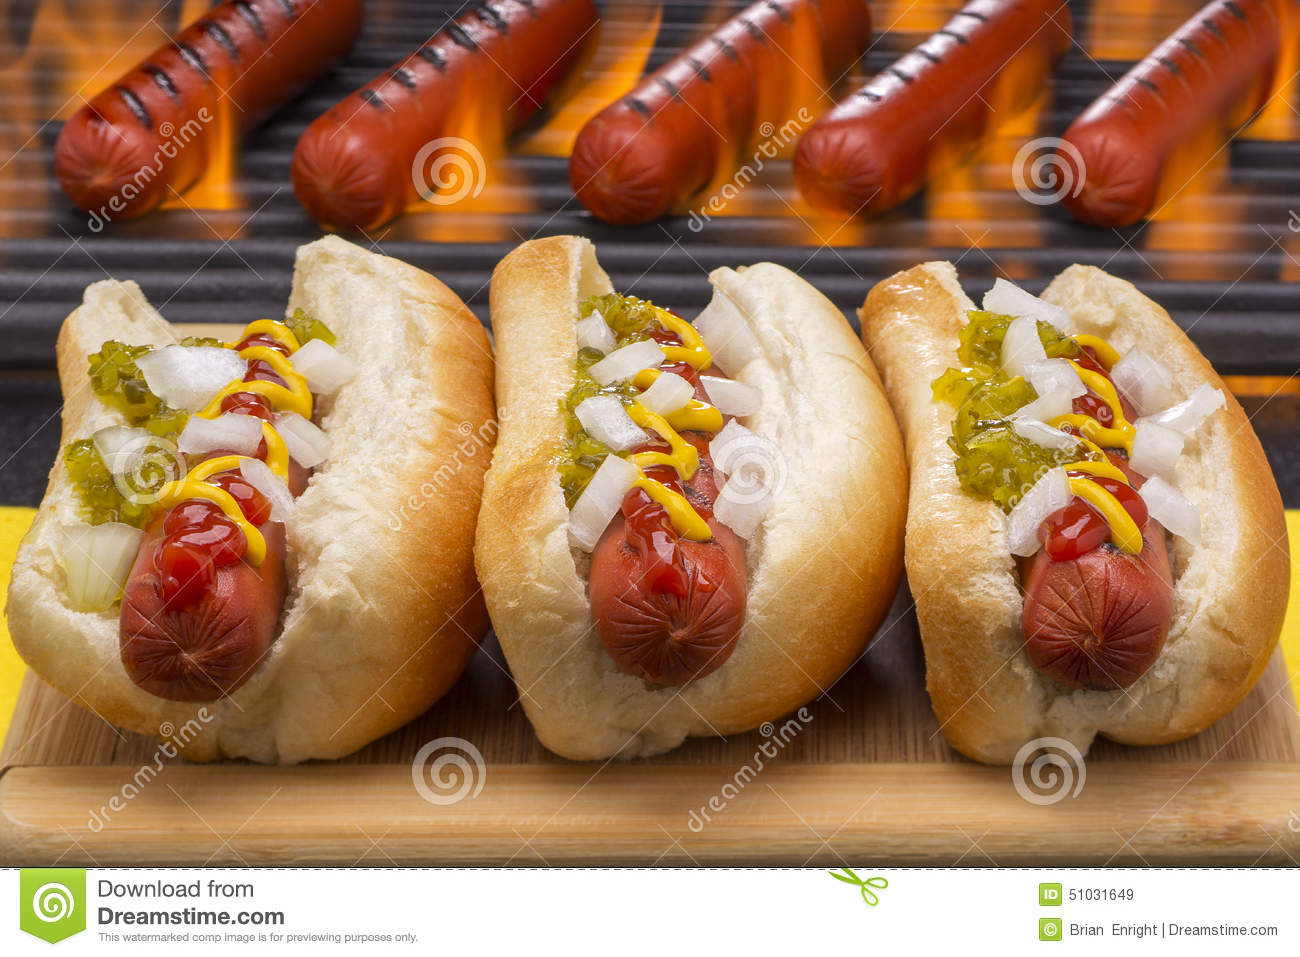 Best All Beef Hot Dogs To Buy